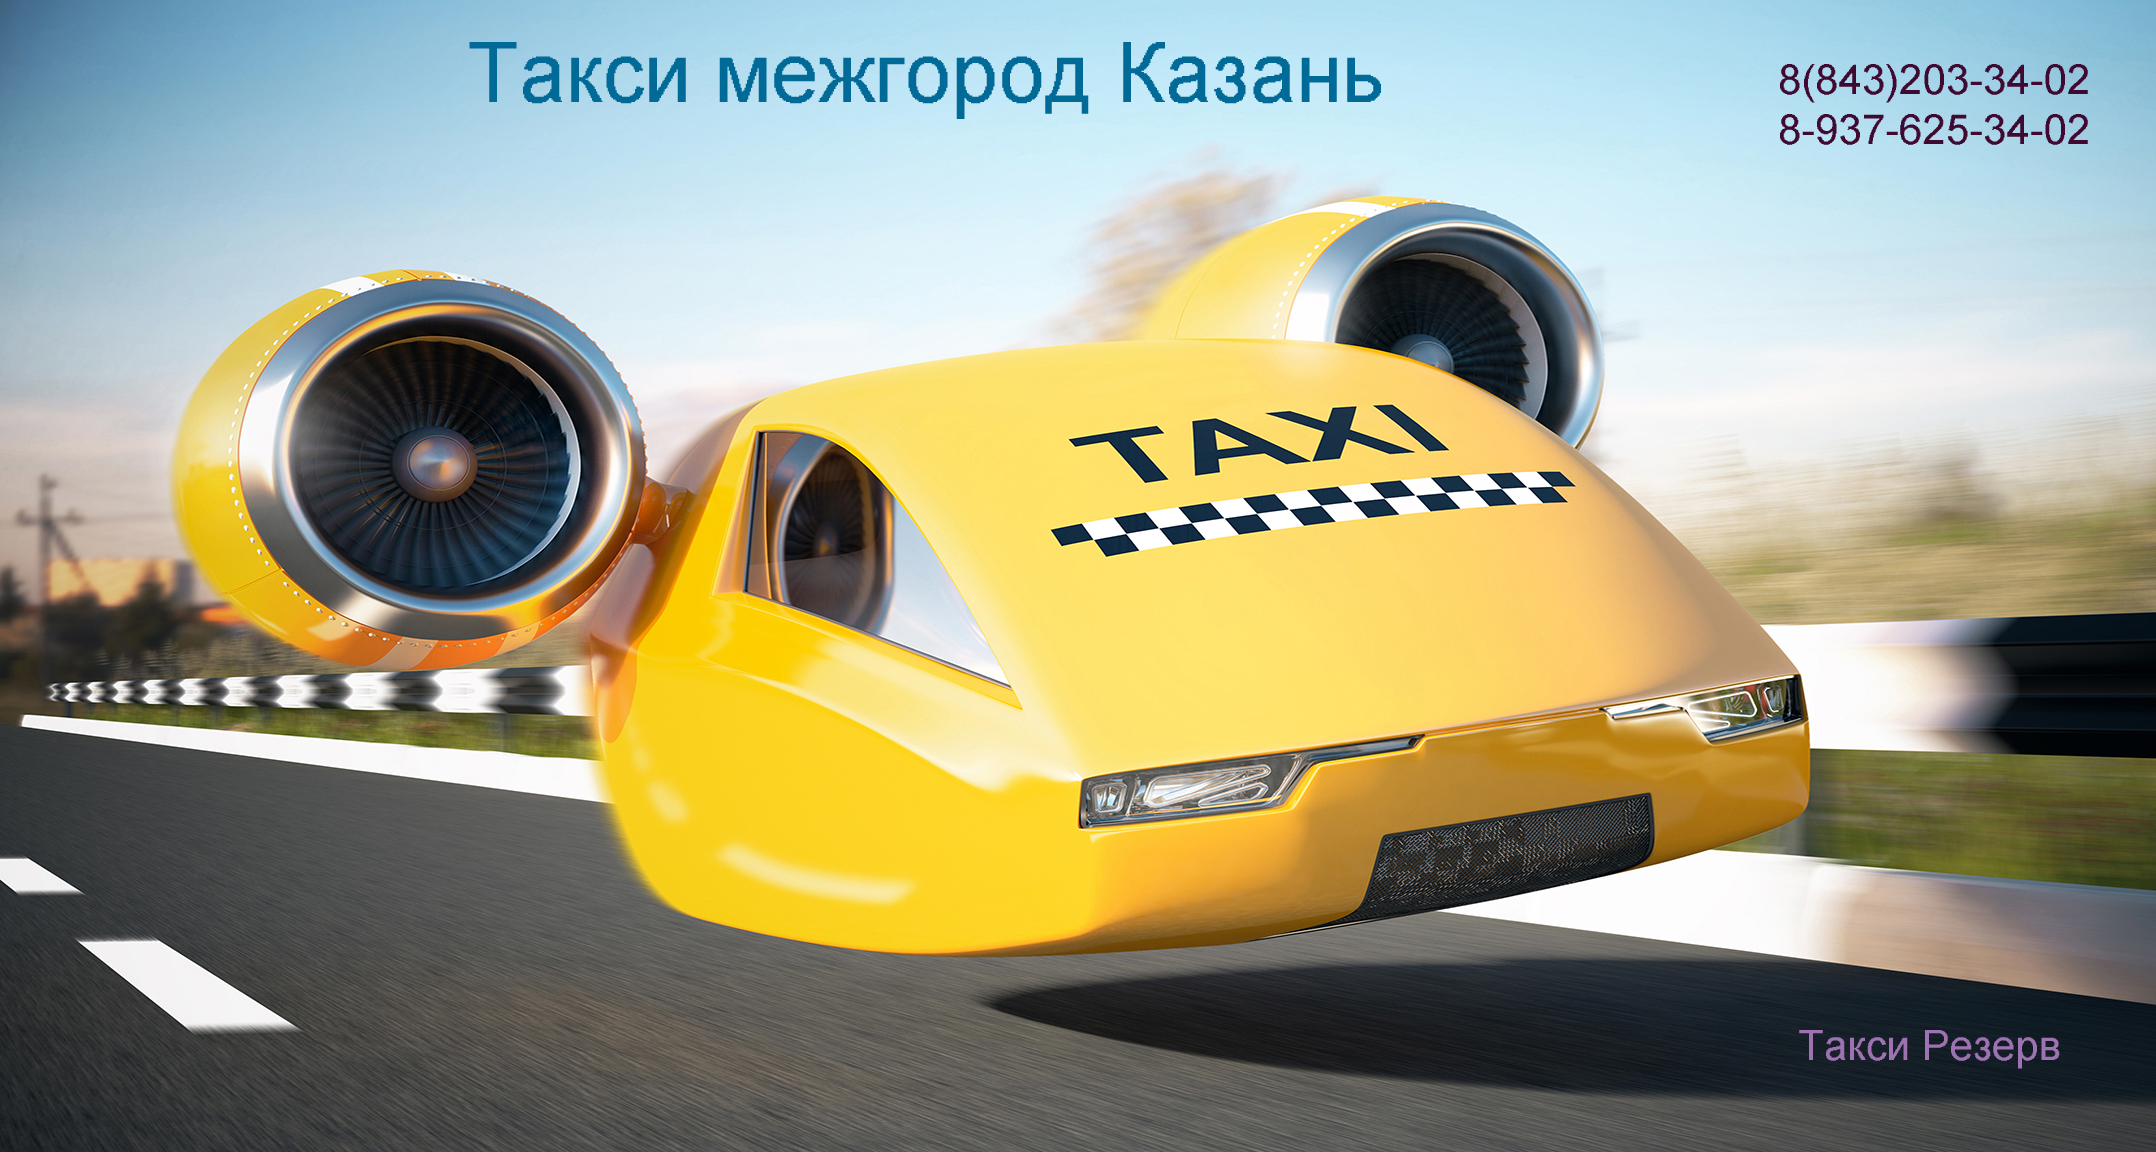 taxi title